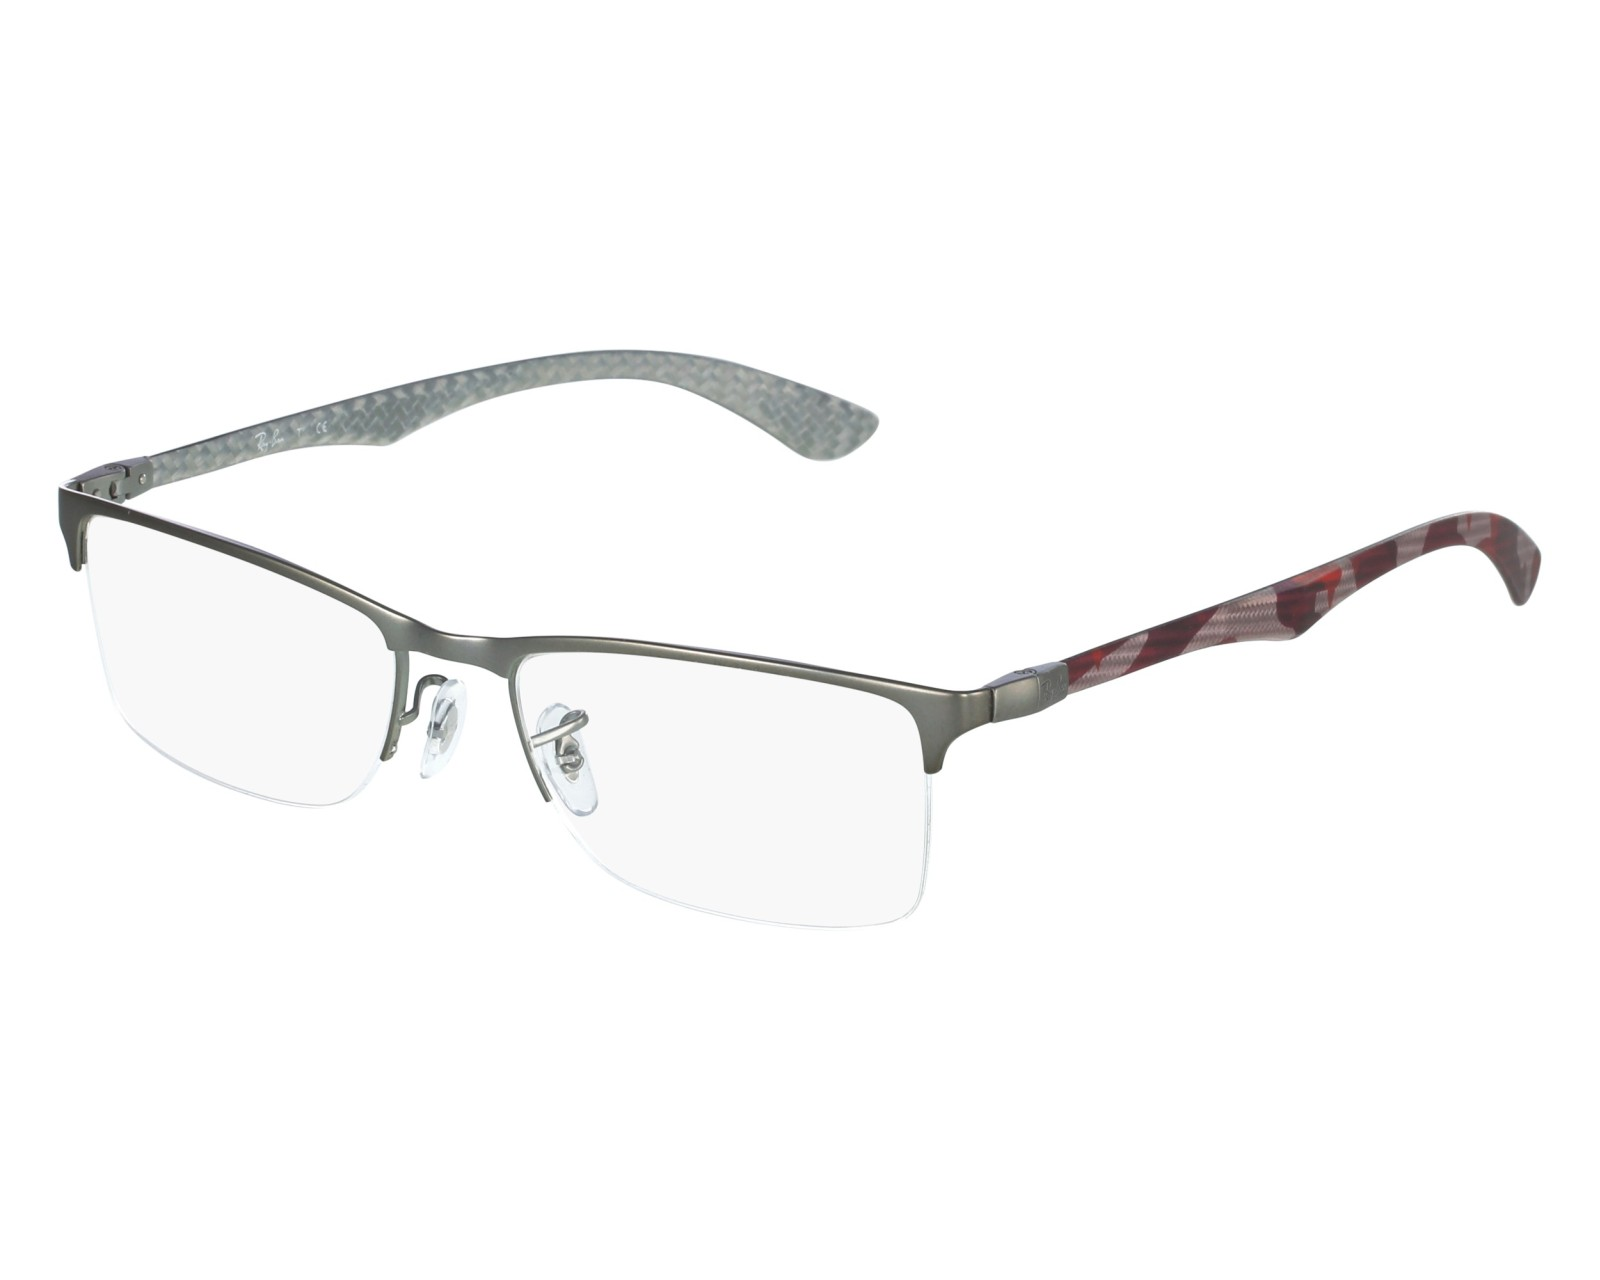 39fbebac161 ... real eyeglasses ray ban rx 8413 2852 54 18 anthracite red front view  18e22 c63b7